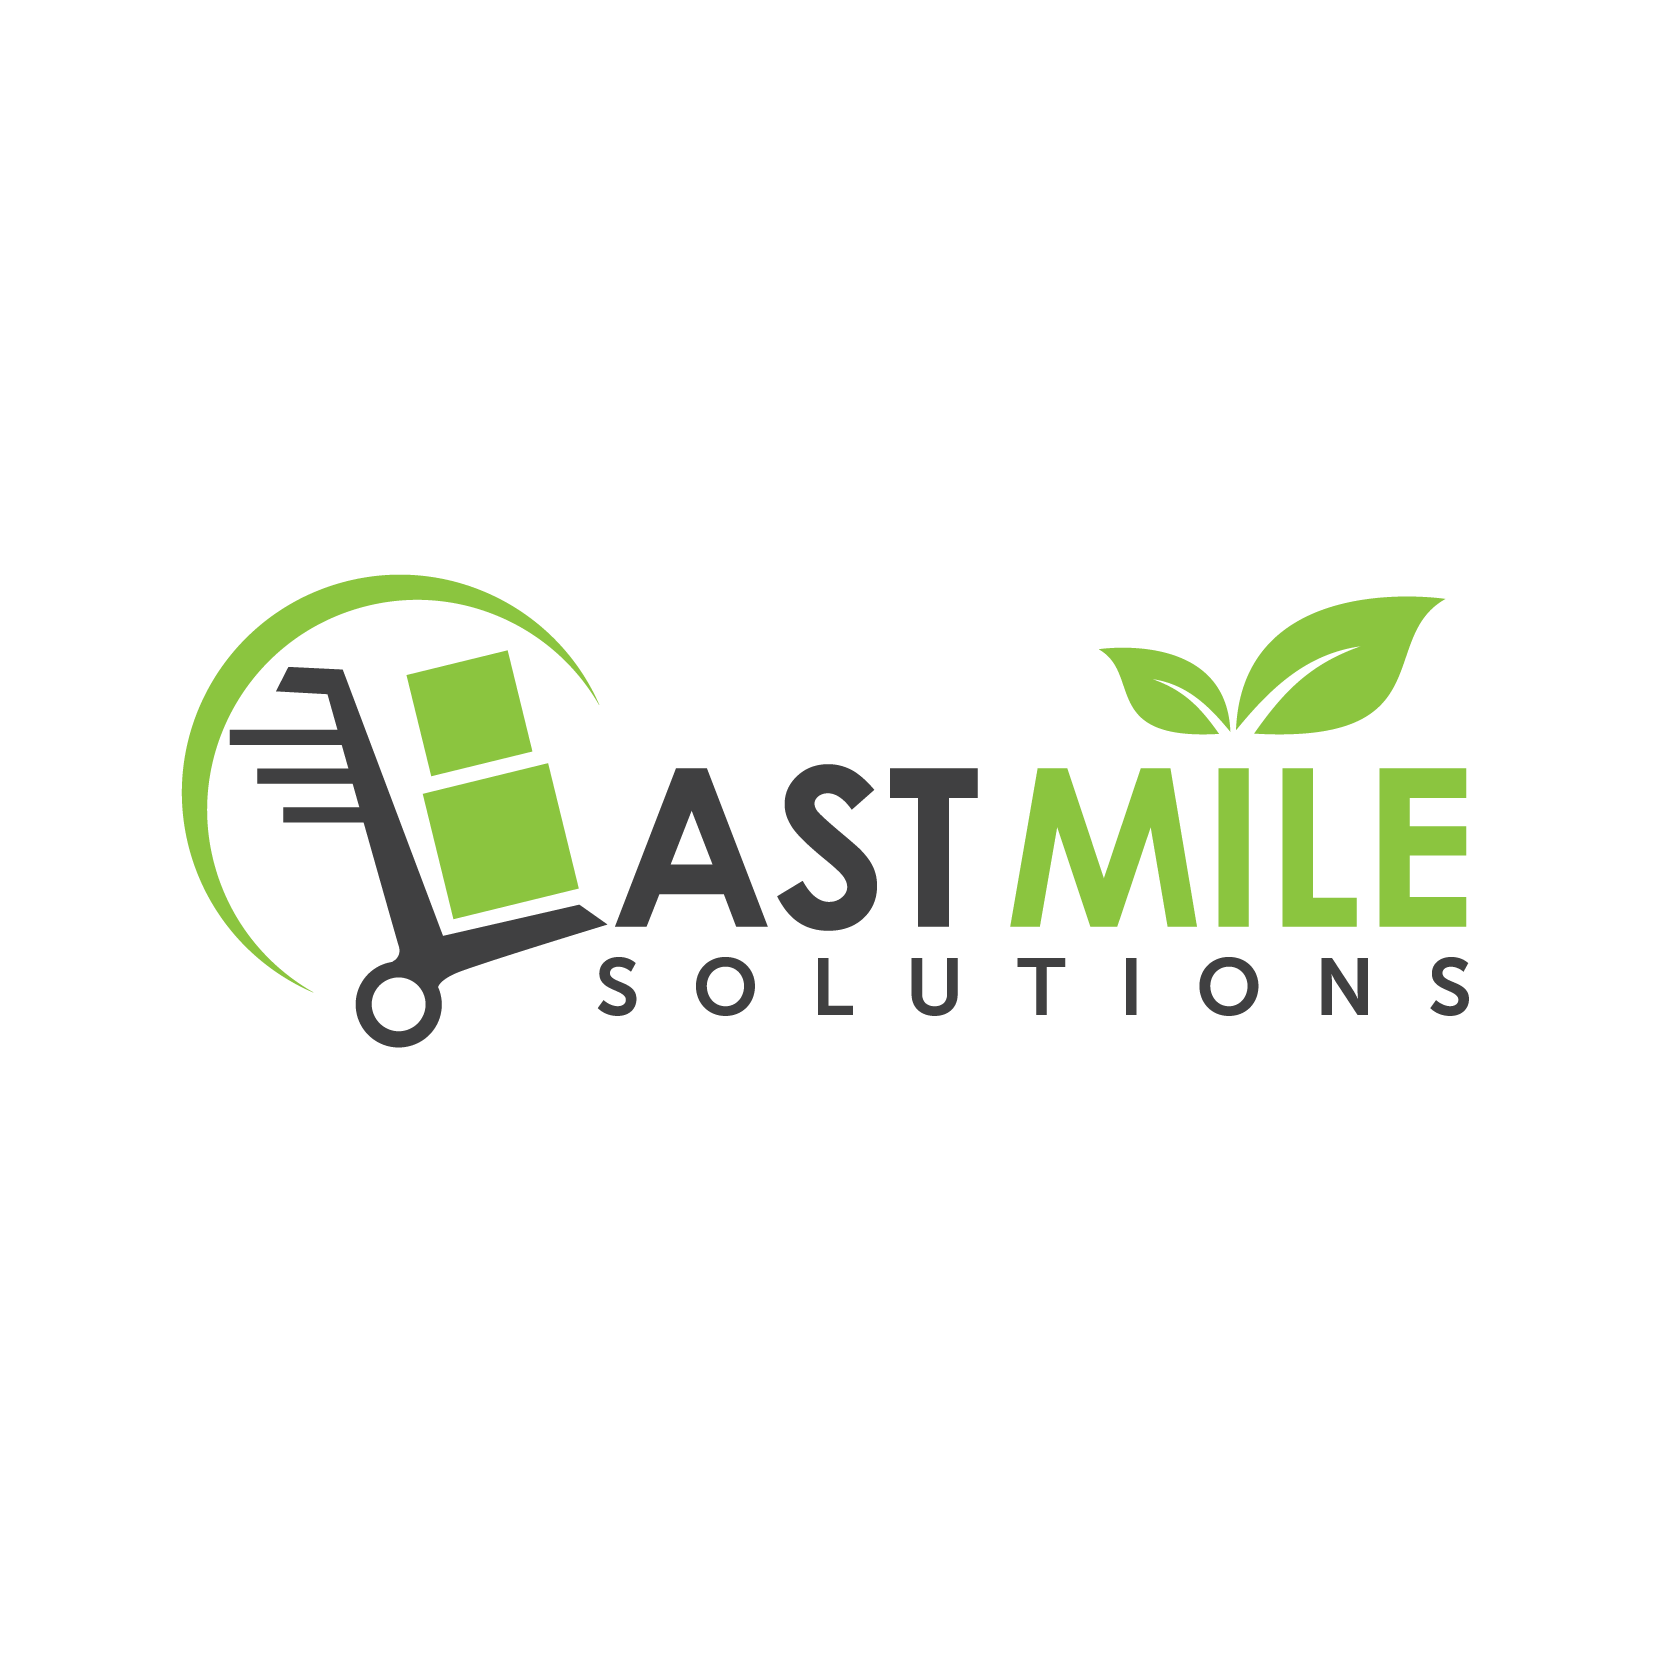 Create a logo for a new business venture delivering parcels